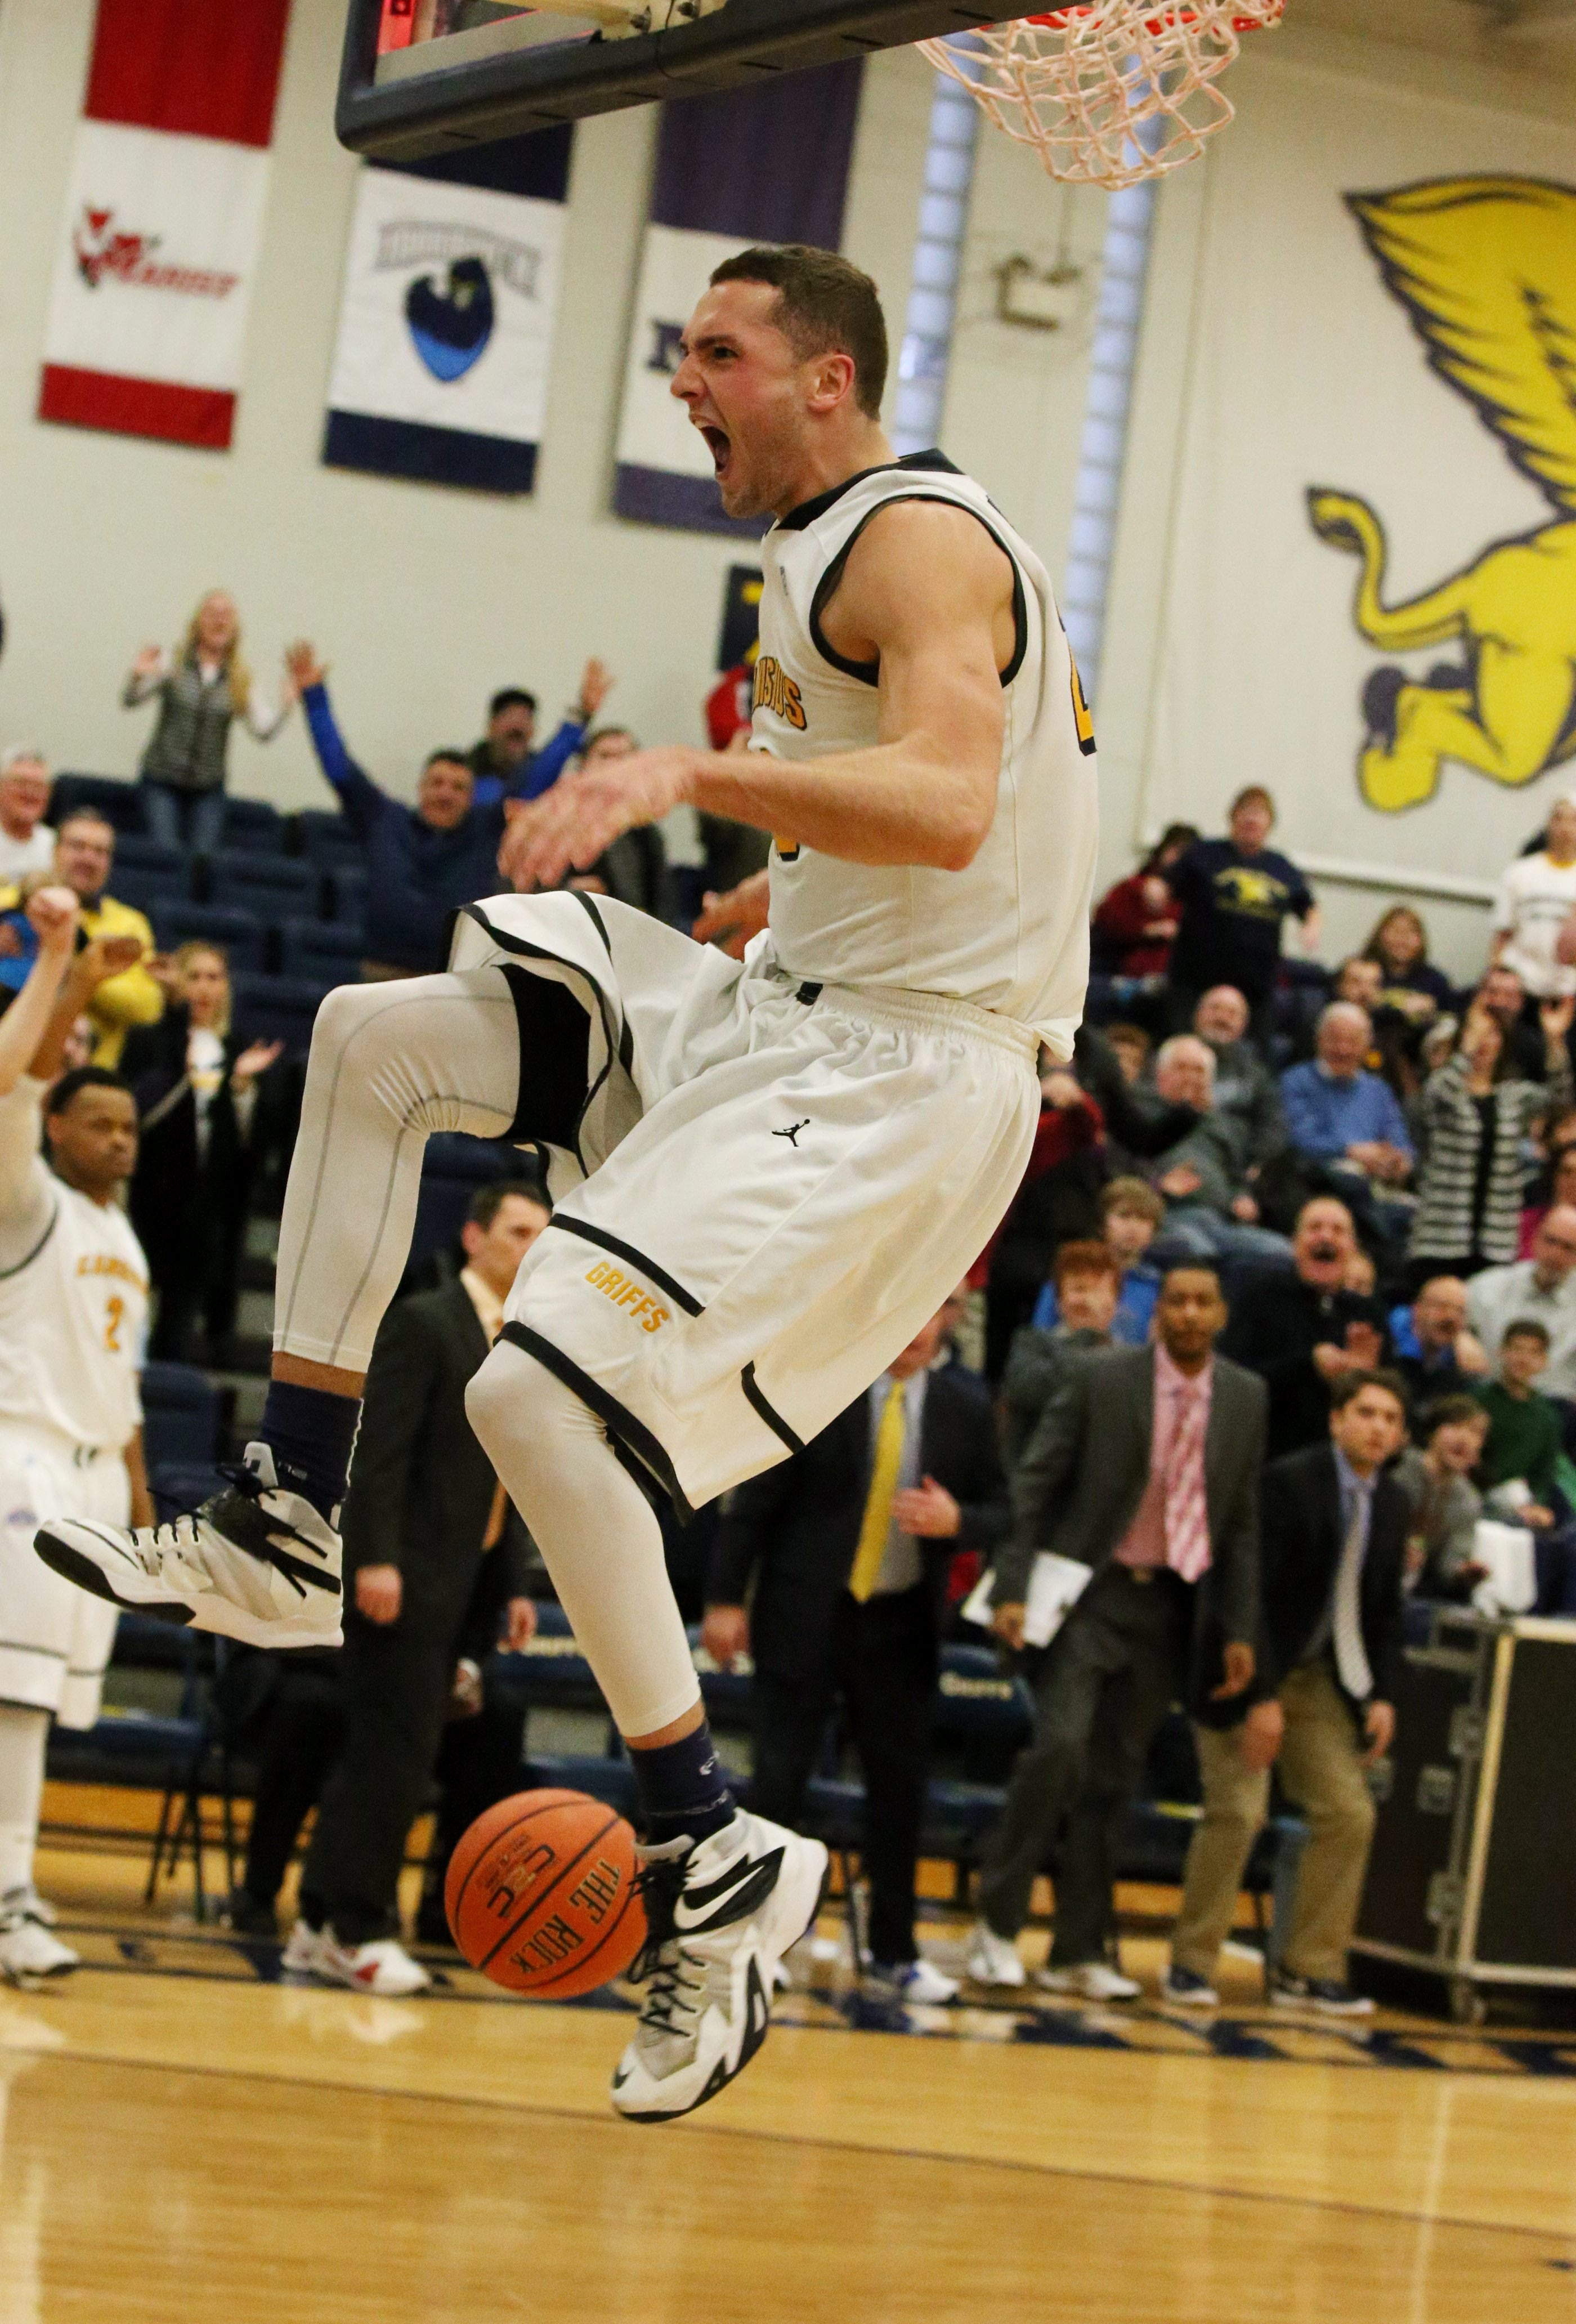 """Phil Valenti exults in a dunk in the final seconds against Iona last year. He's a leader of Jim Baron's pack of """"junkyard dogs."""""""